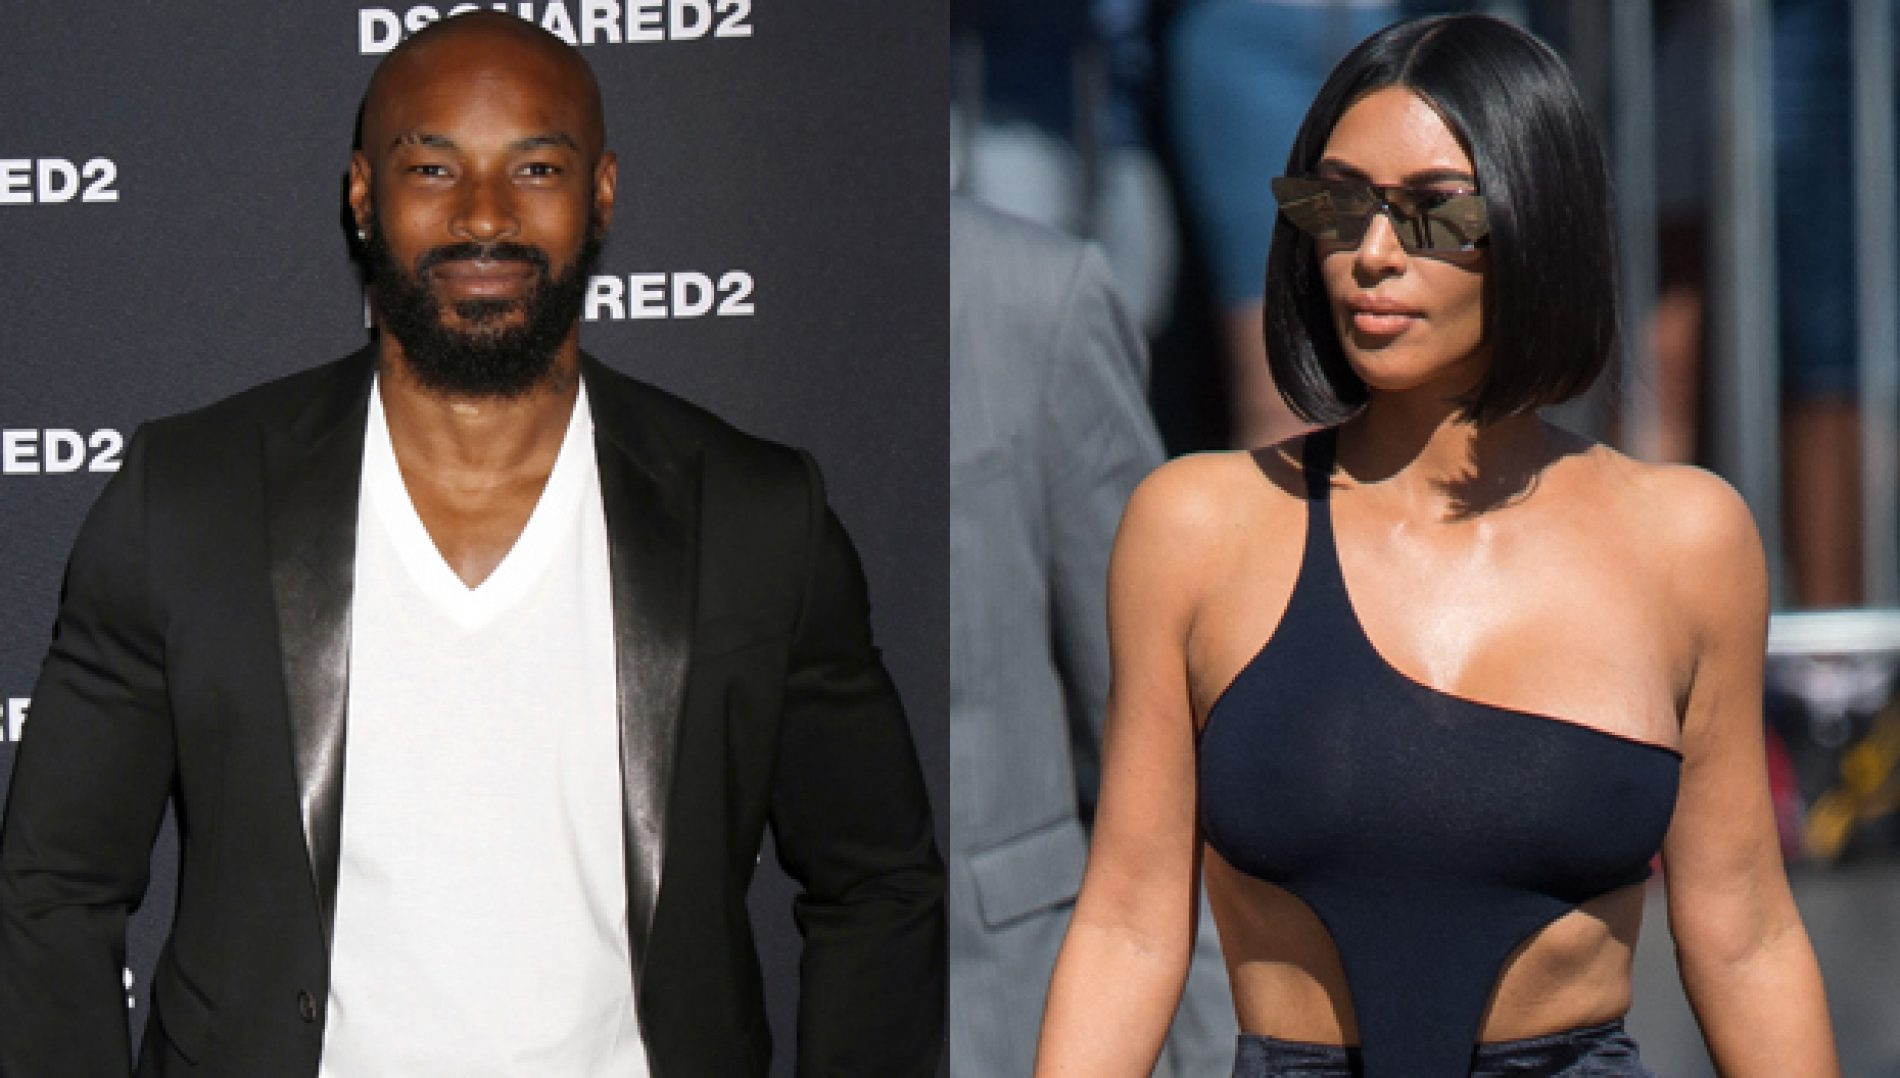 Tyson Beckford doesn't appear to be done with trolling Kim Kardashian